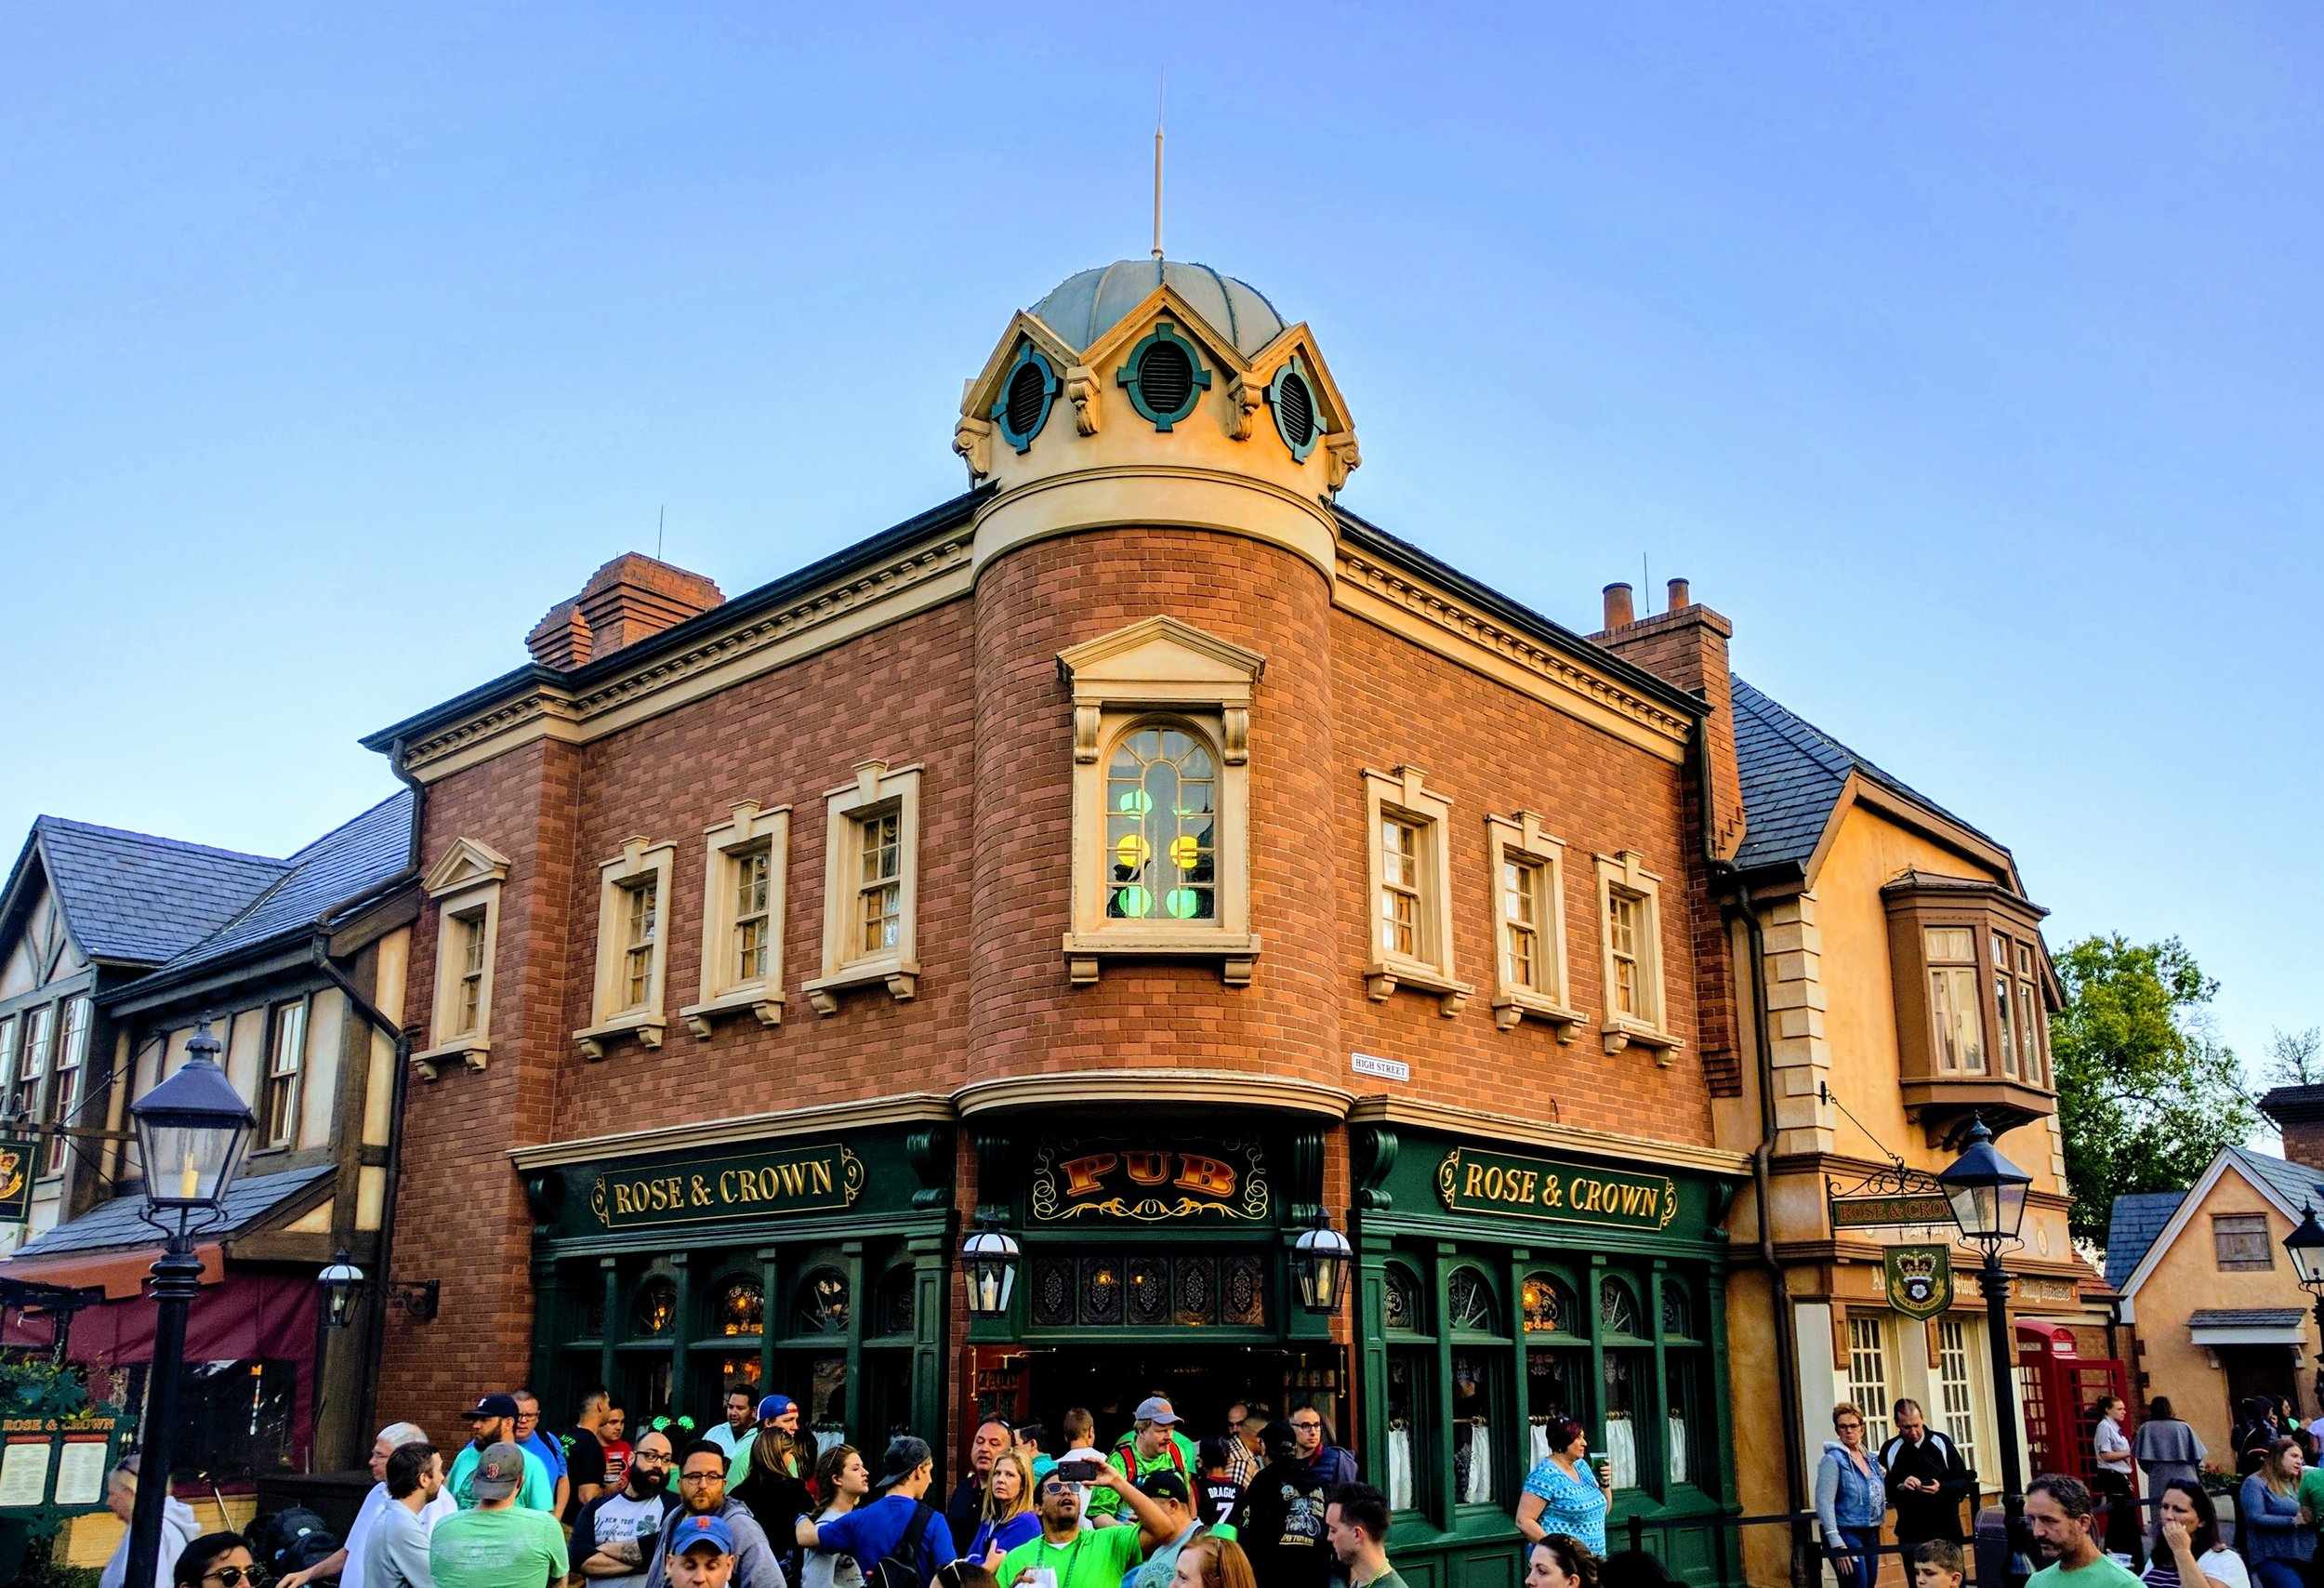 Rose & Crown is located in the UK pavilion.